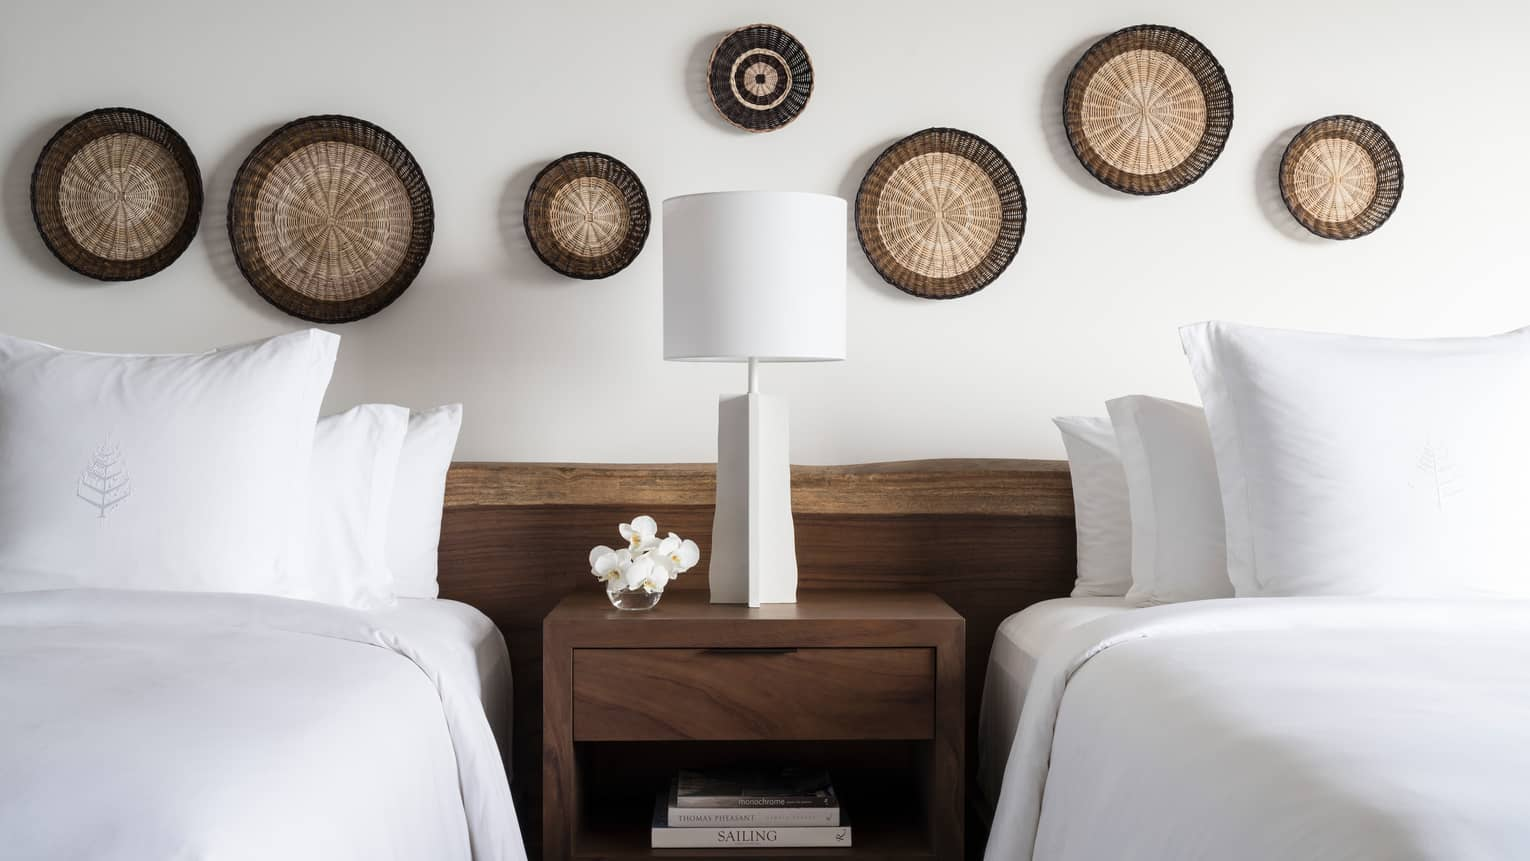 Wood nightstand and white lamp between twin beds, decorative rattan discs on wall